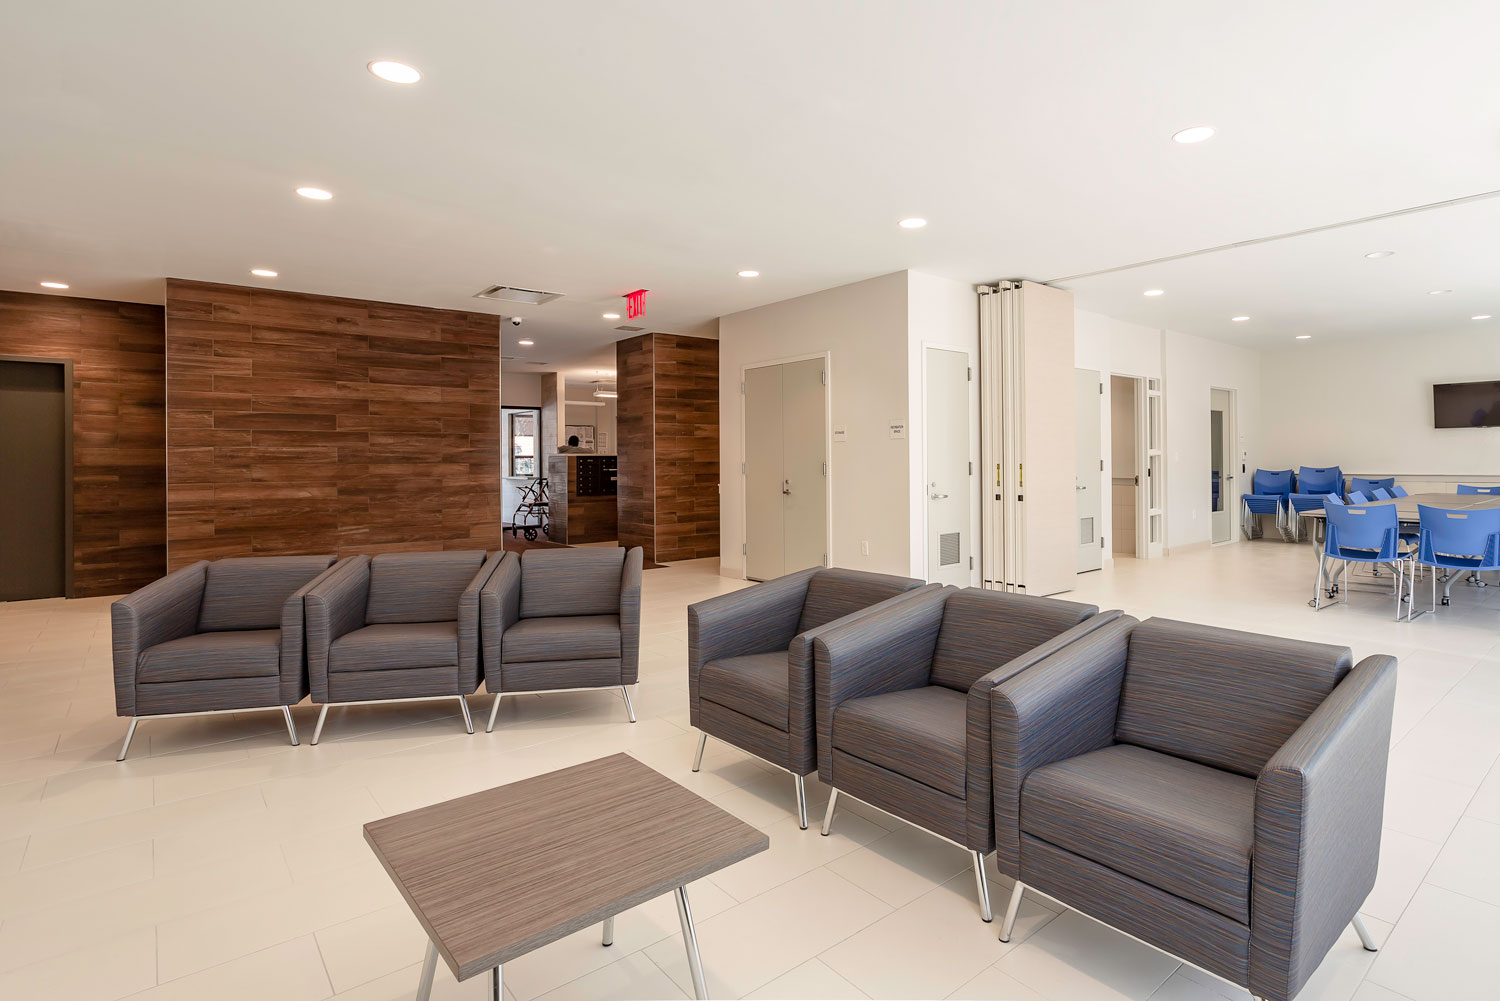 A folding wall expands the lobby lounge for community gatherings and events.